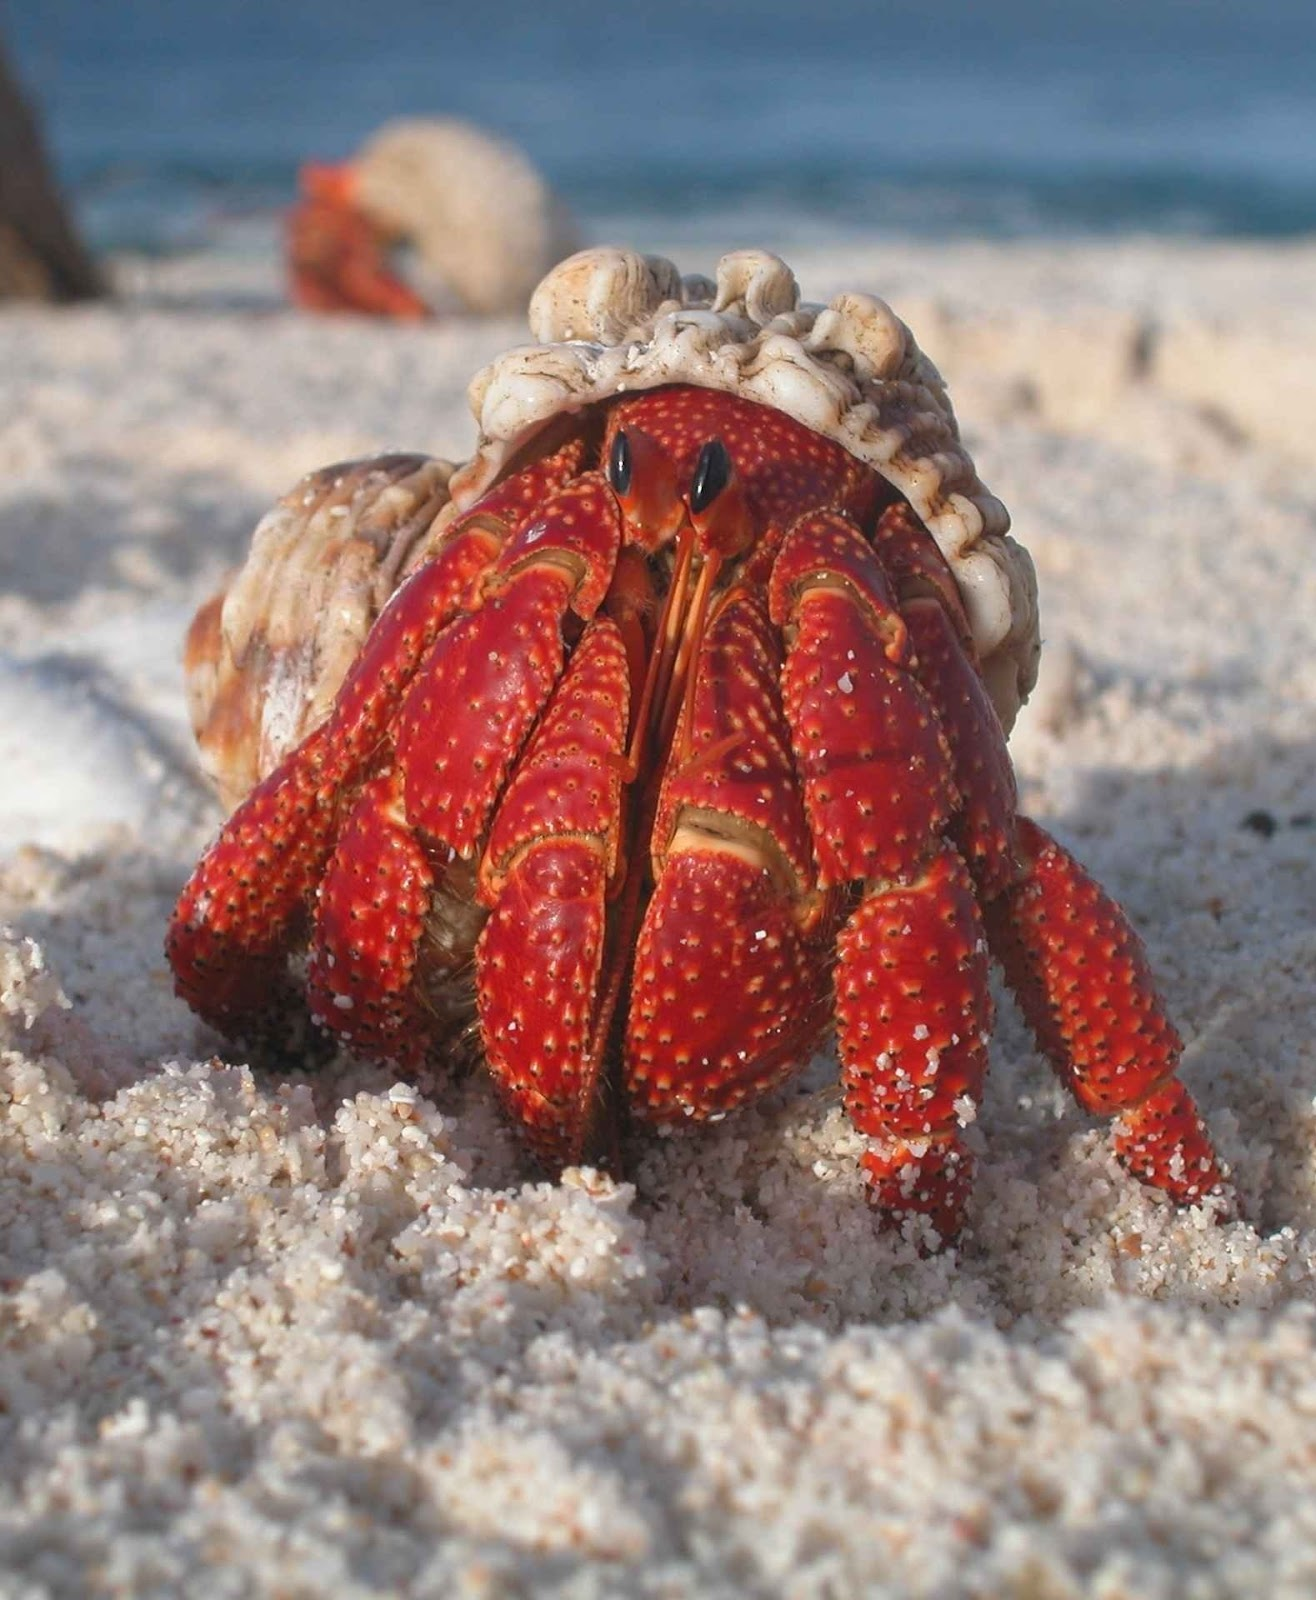 Picture of a hermit crab.